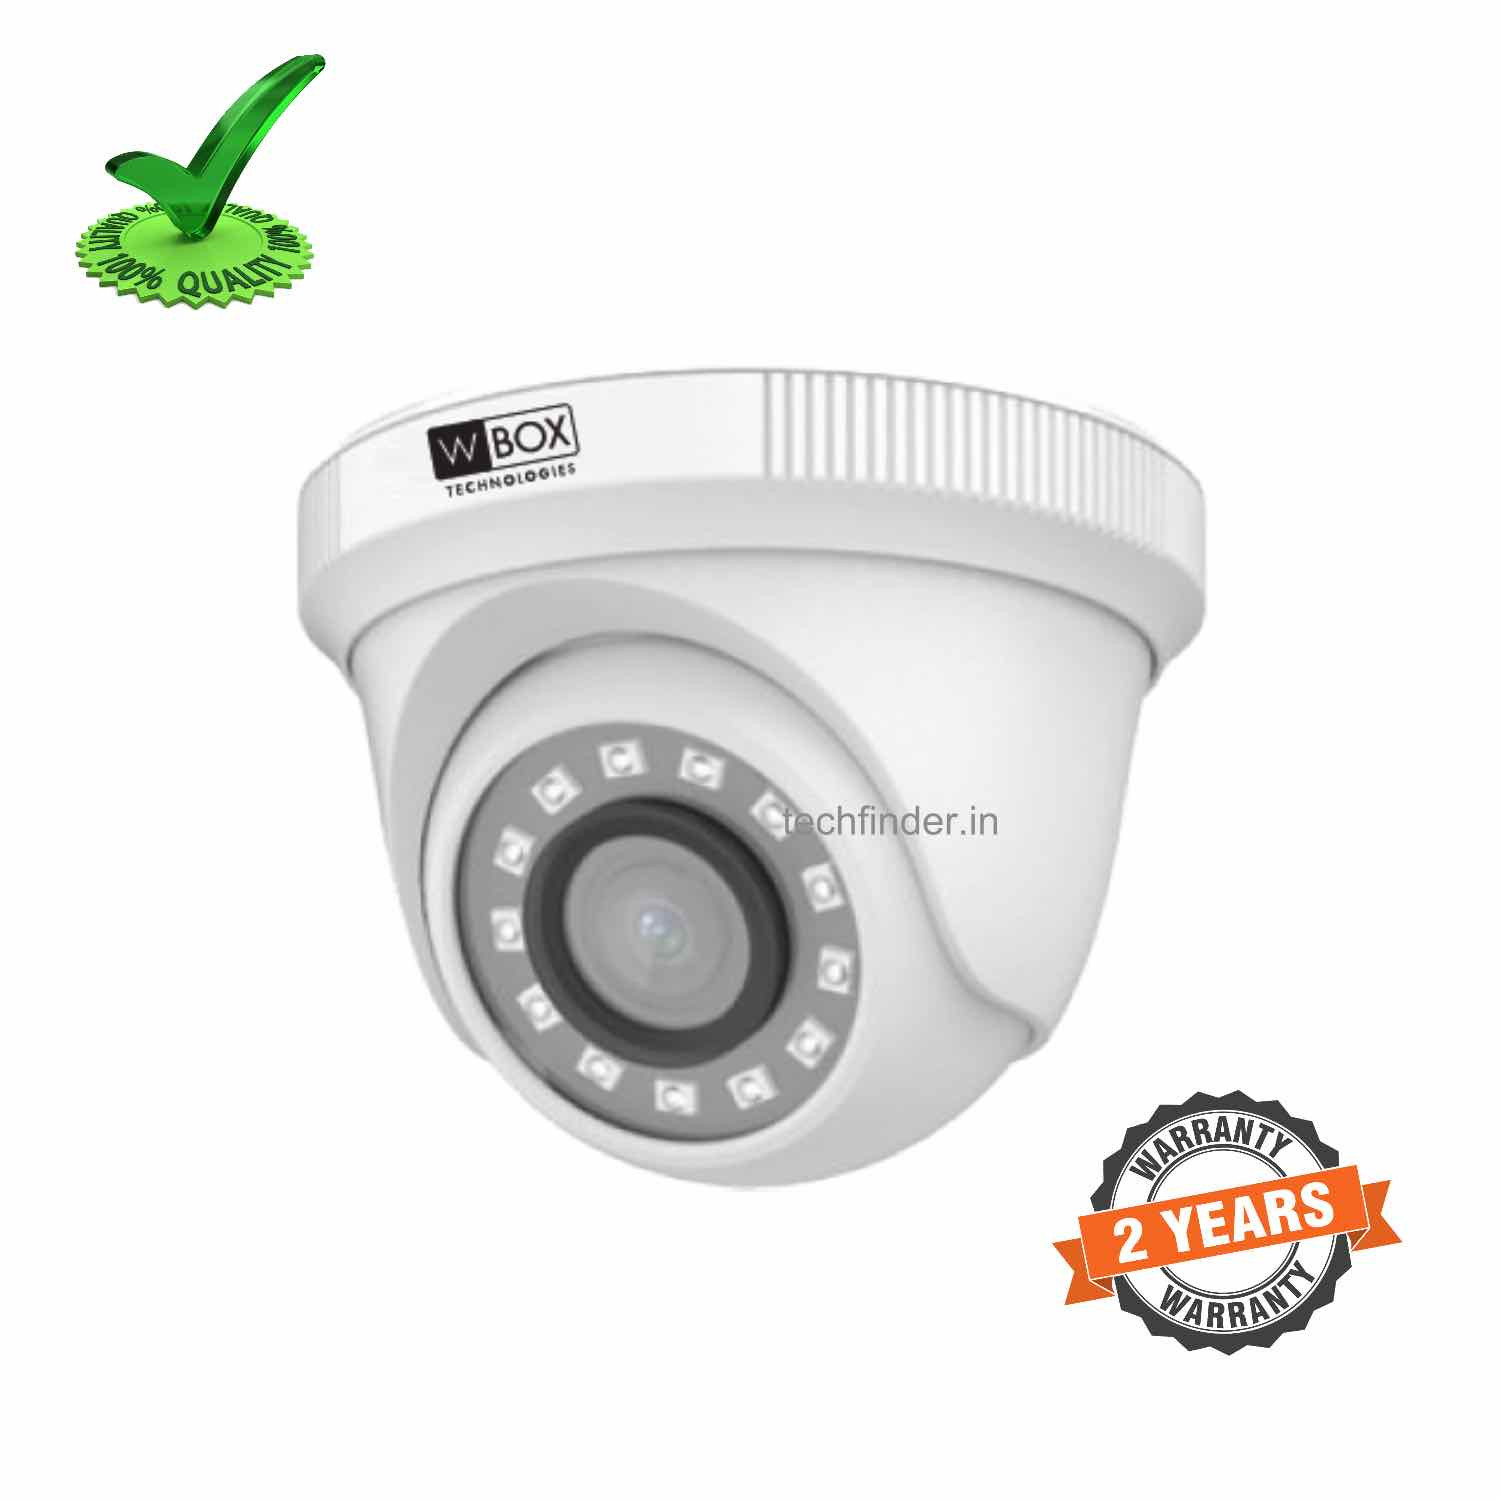 W Box WBC0ECVHD2R2FPN 2mp 1080p HD IR Dome Camera